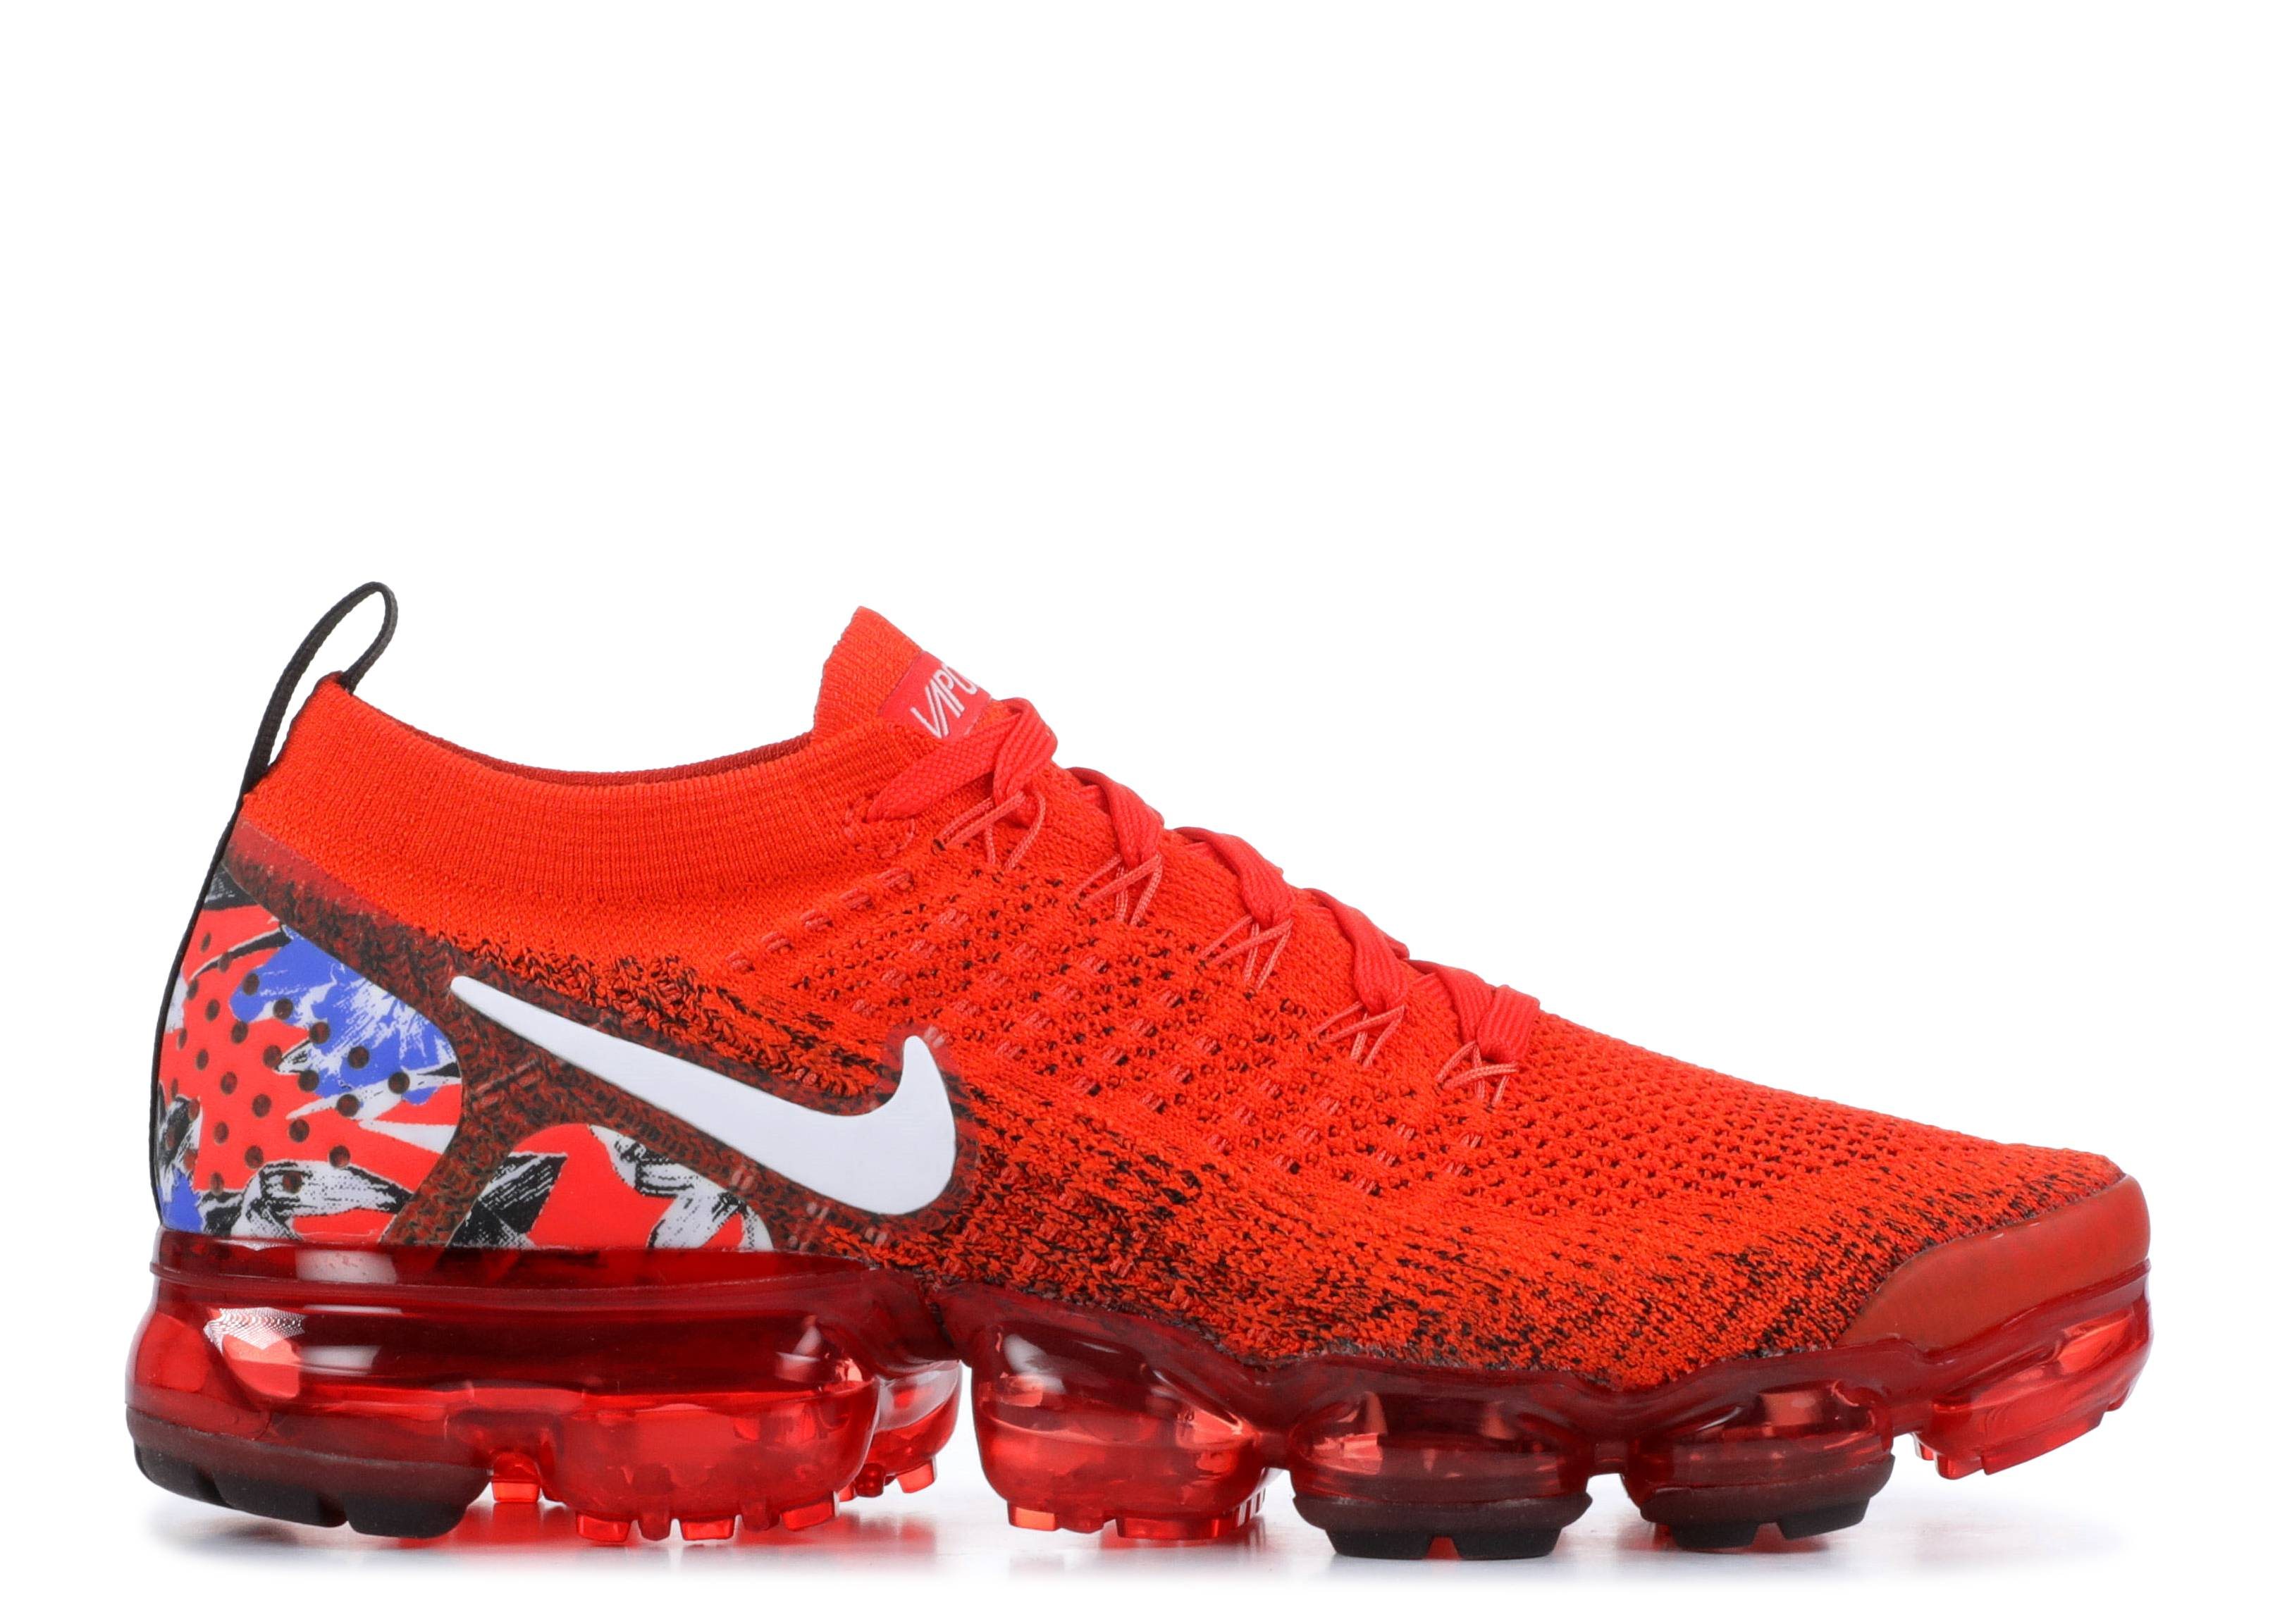 detailed look 7489e bfd7b Vapormax - Nike Running - Nike | Flight Club